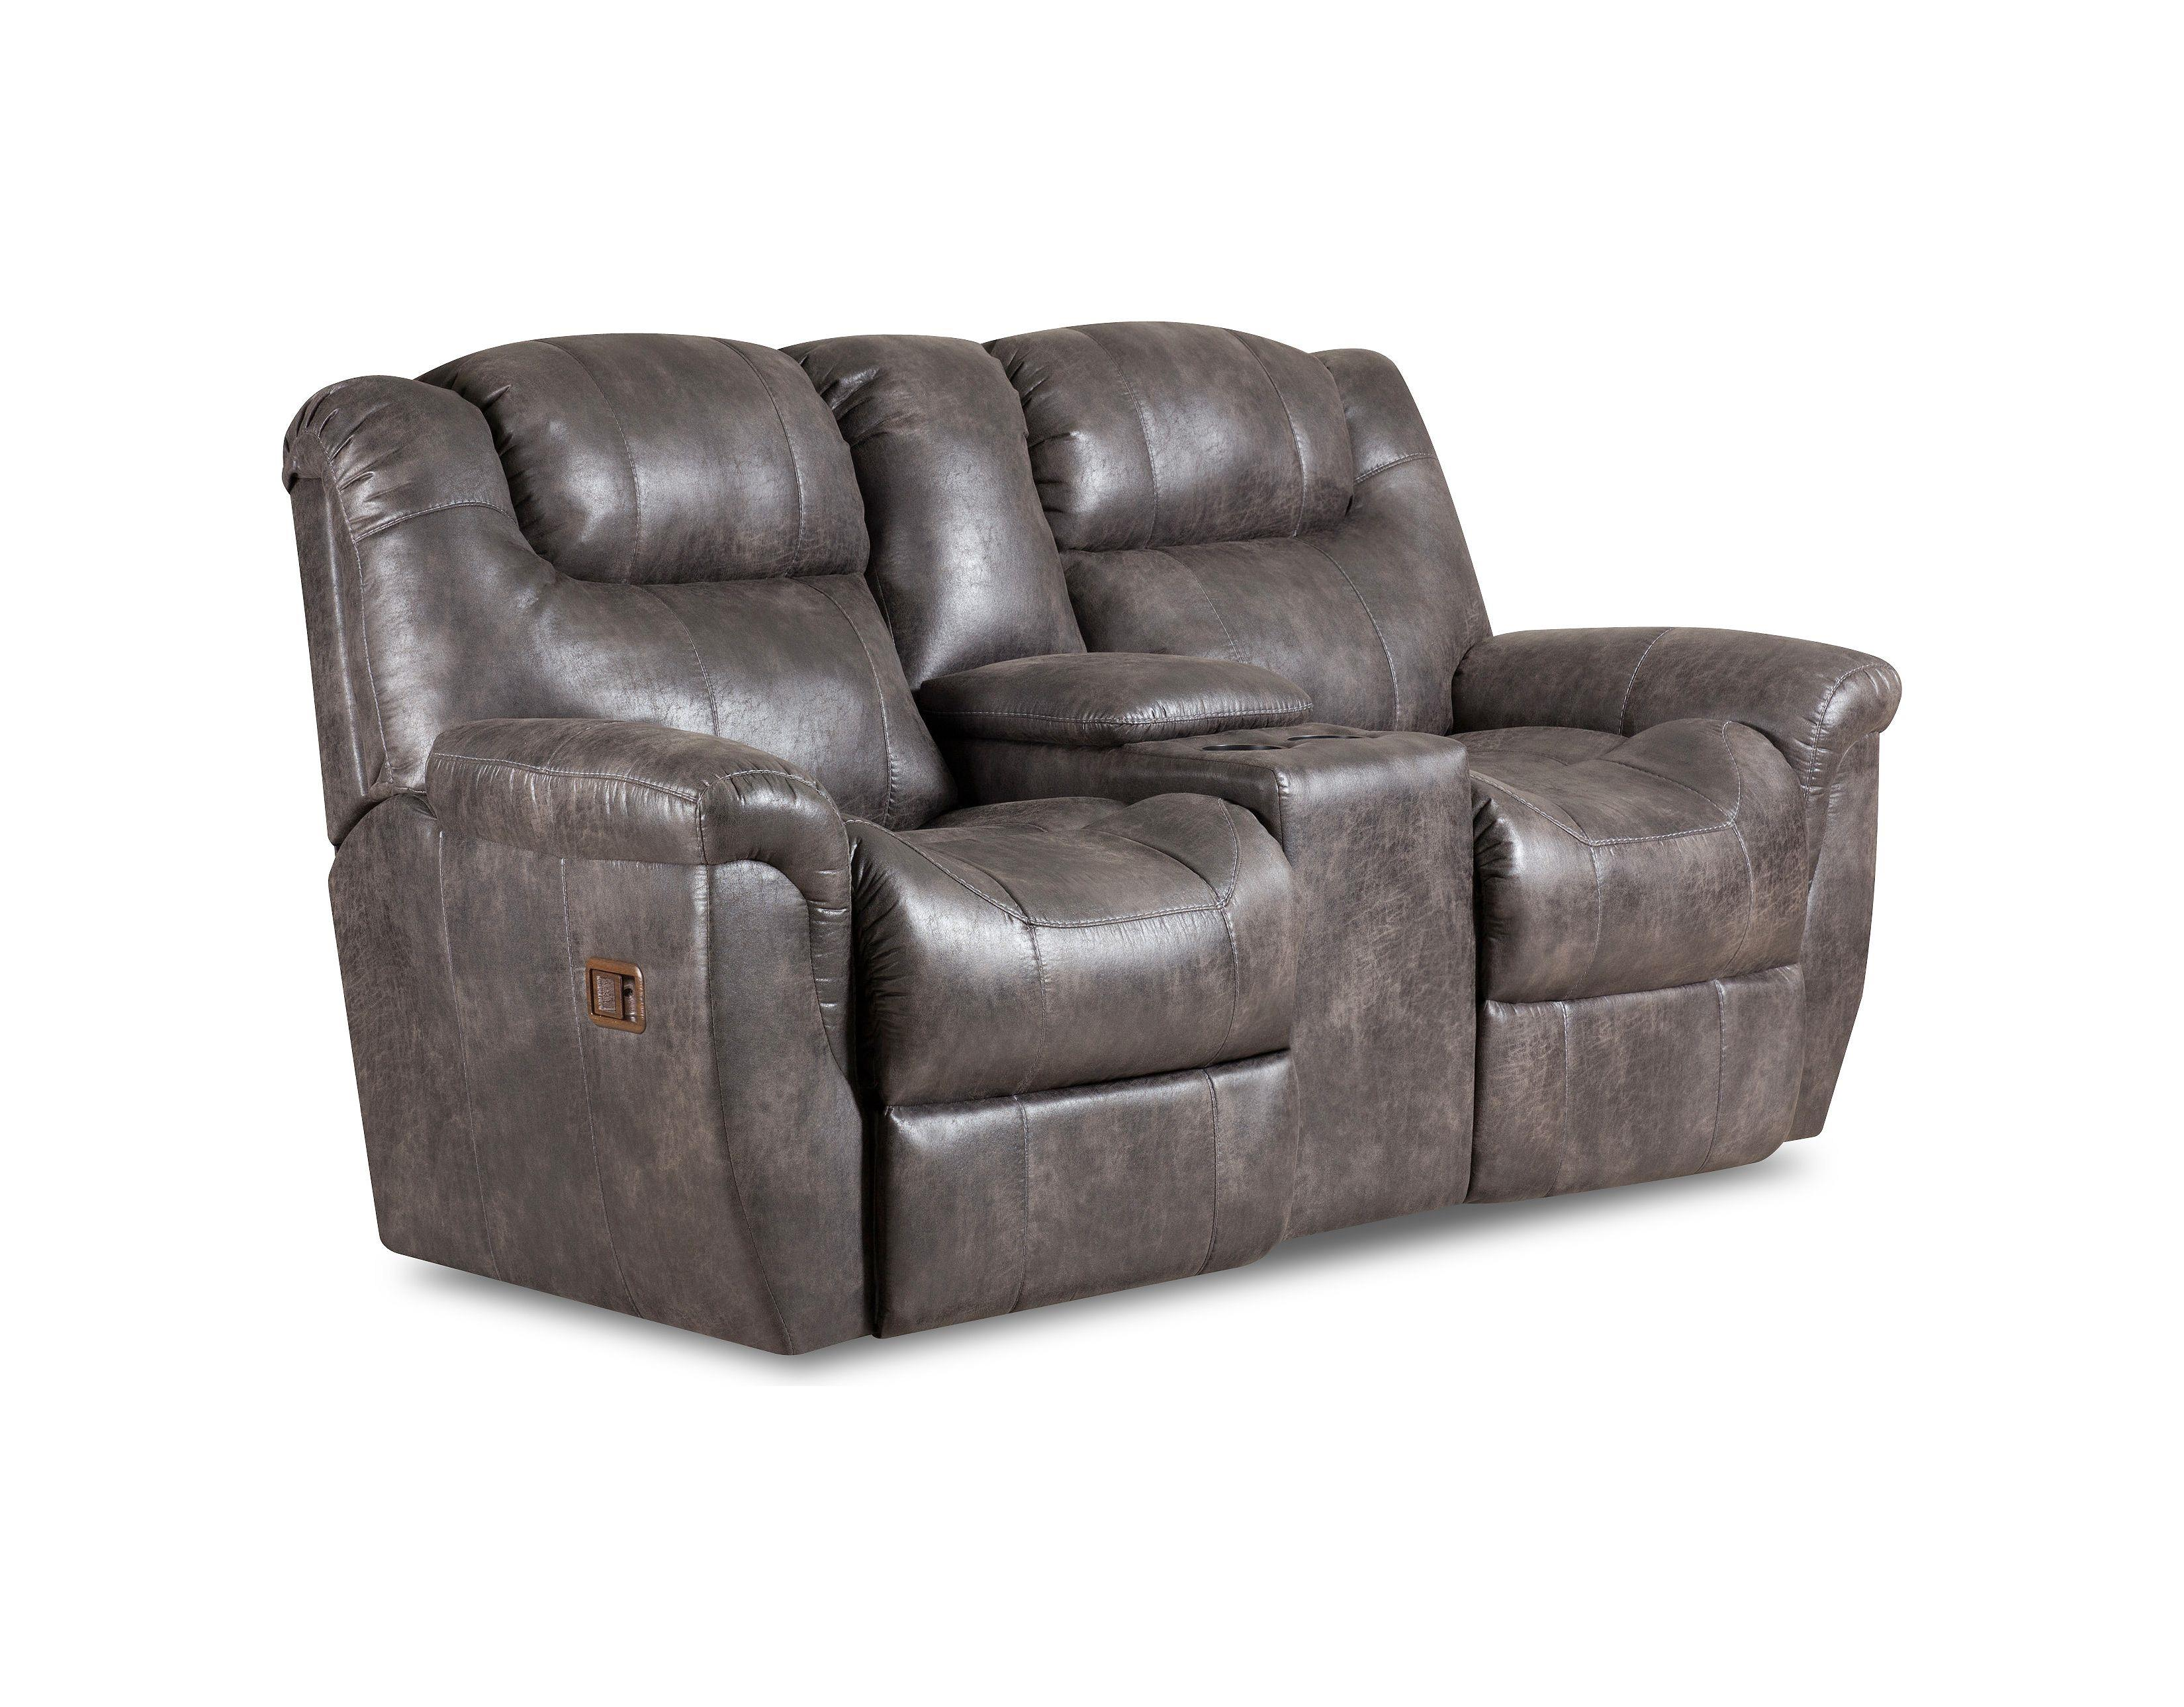 lane triple reclining sofa leather colorado springs montgomery 216 63 double power console